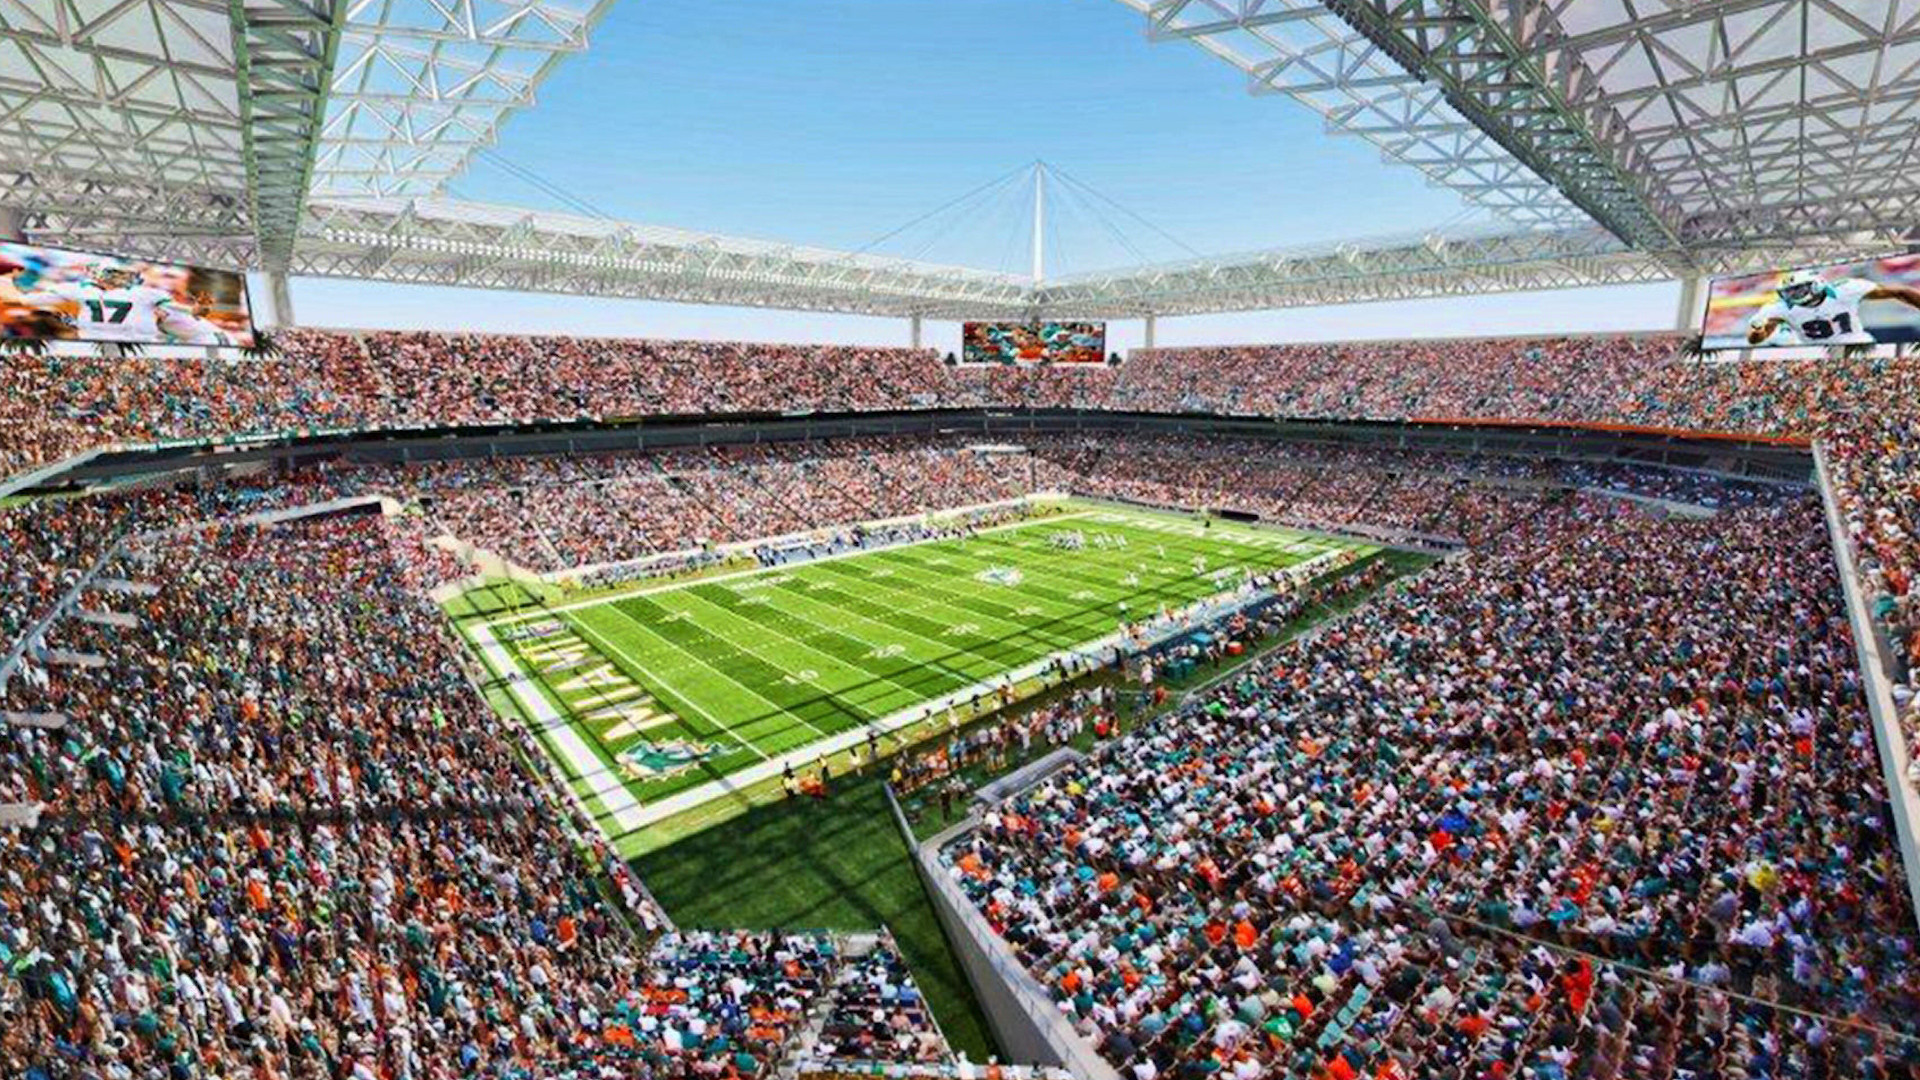 Nfl Owners Select South Florida To Host Super Bowl Liv 54 In 2020 Chicago Tribune